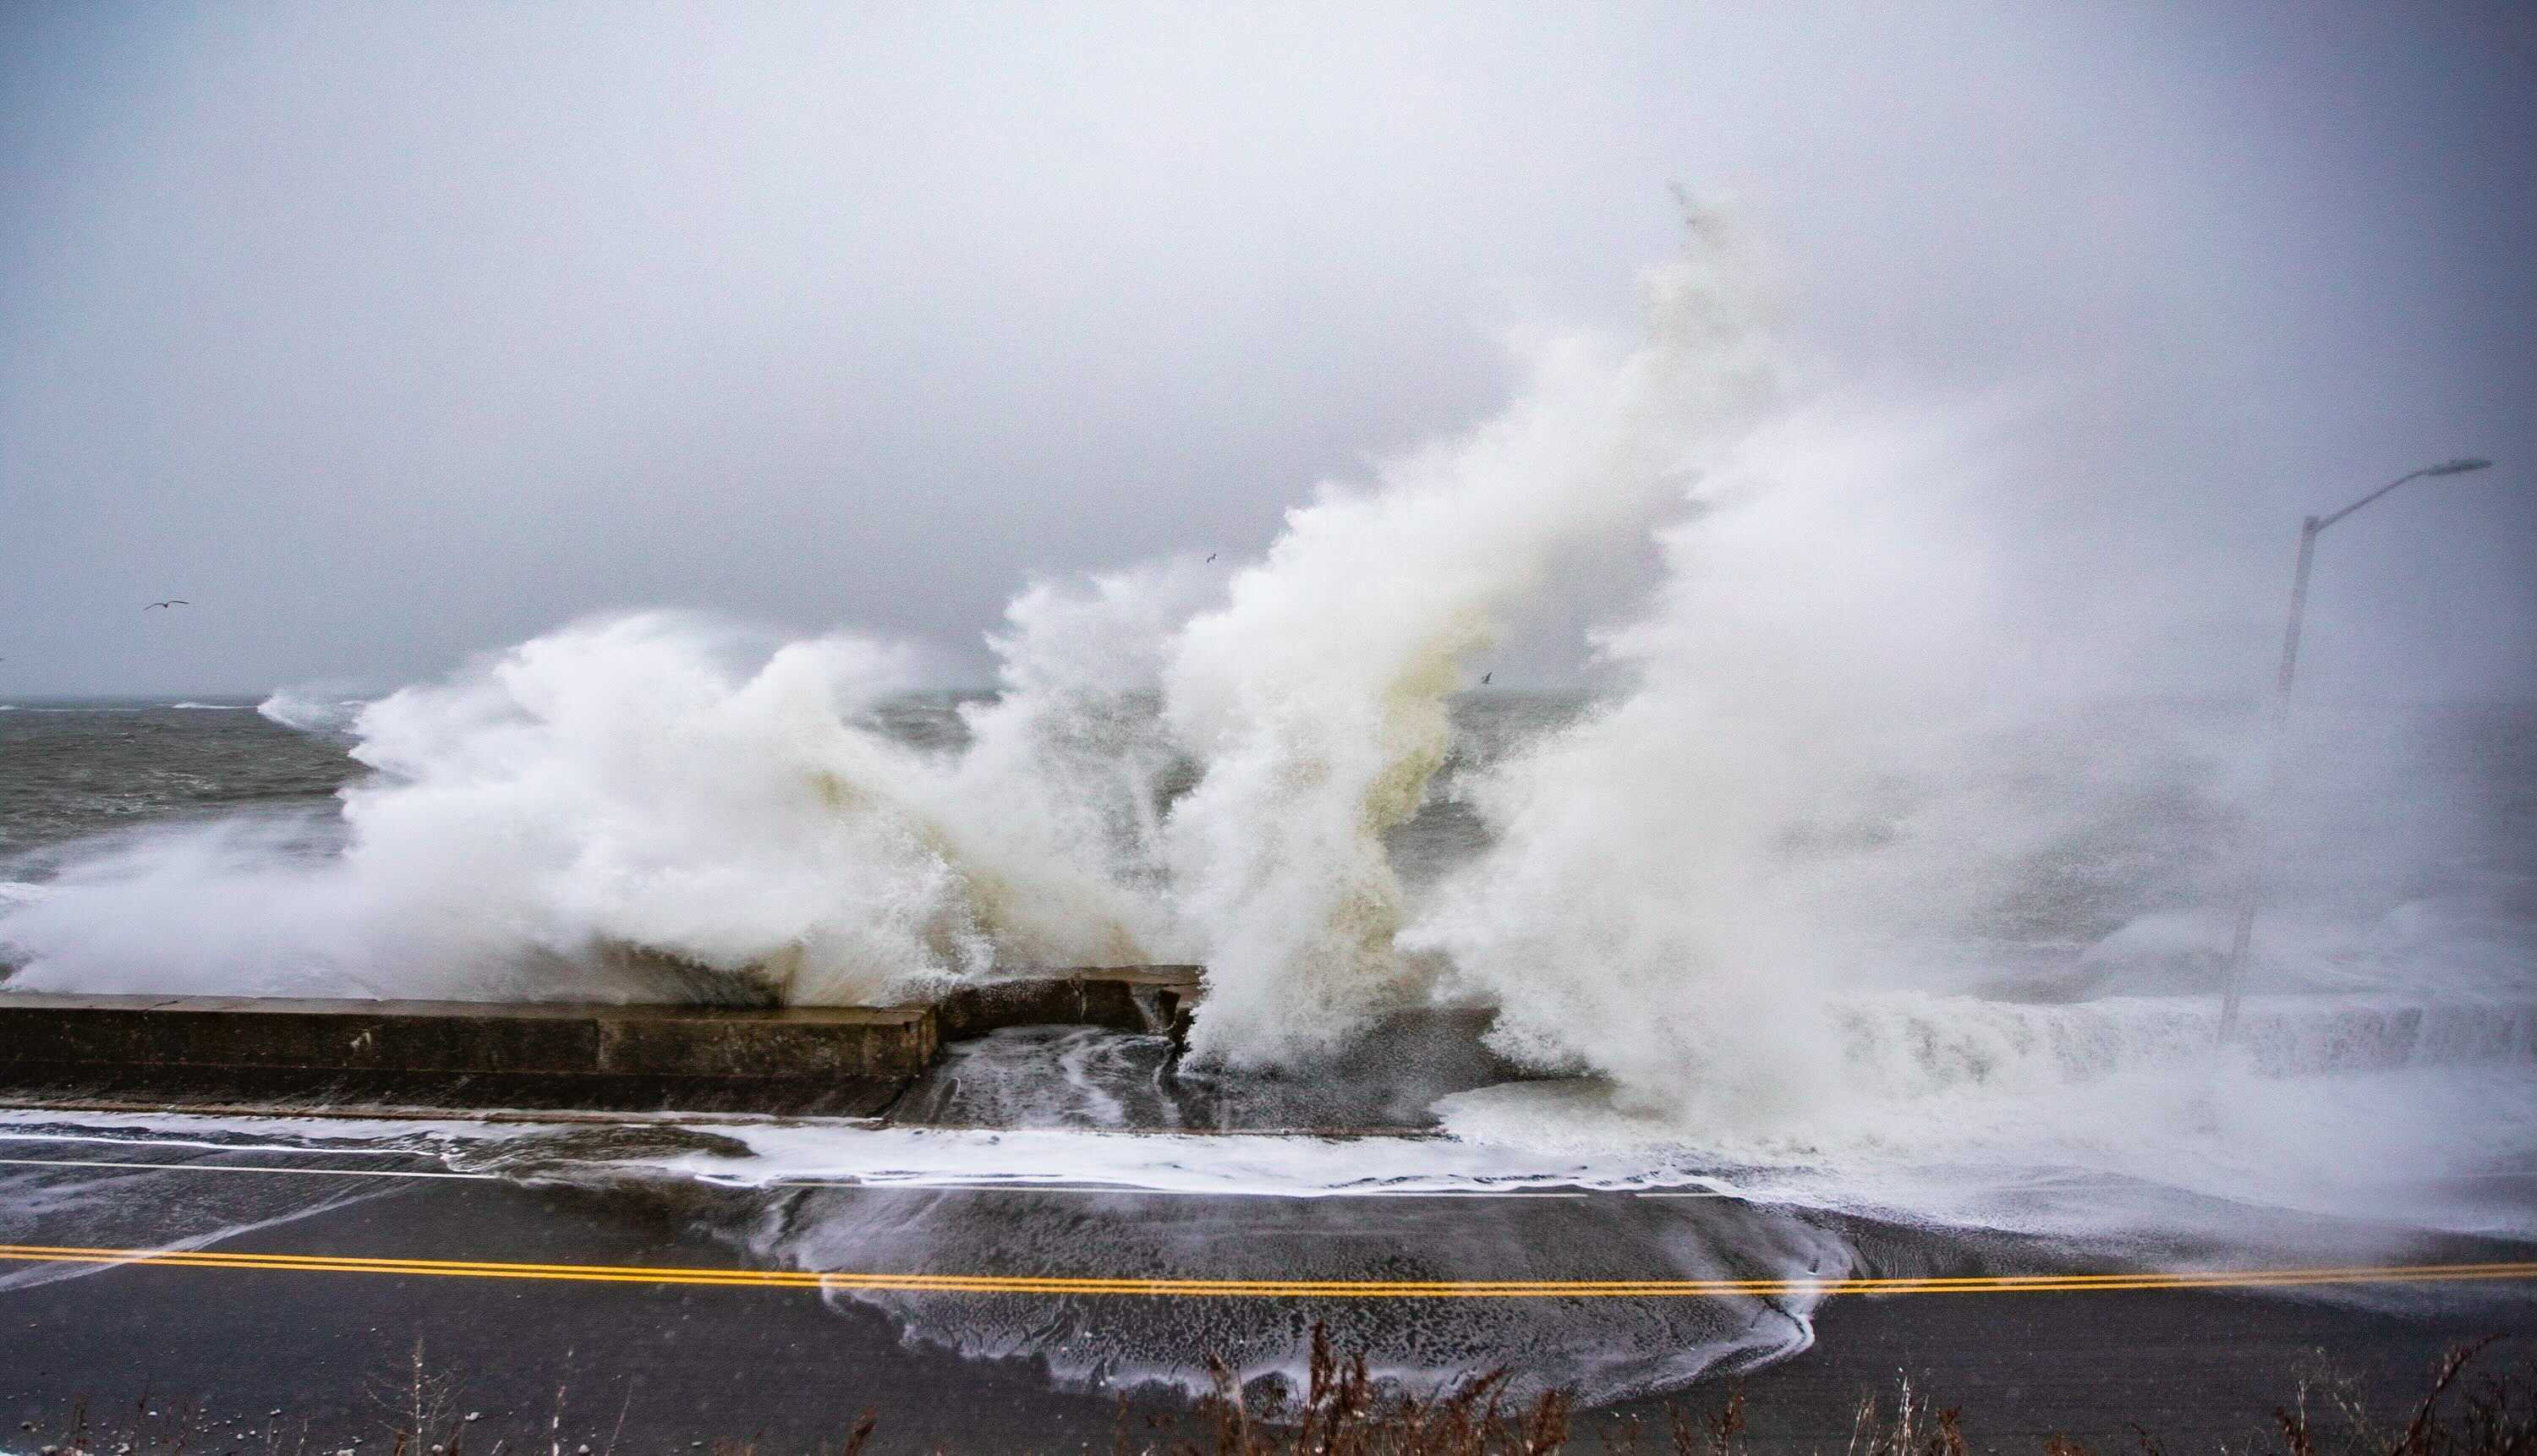 Waves crash over the seawall on Winthrop Parkway in Revere during a high tide on Dec. 17, 2020. (Jesse Costa/WBUR)